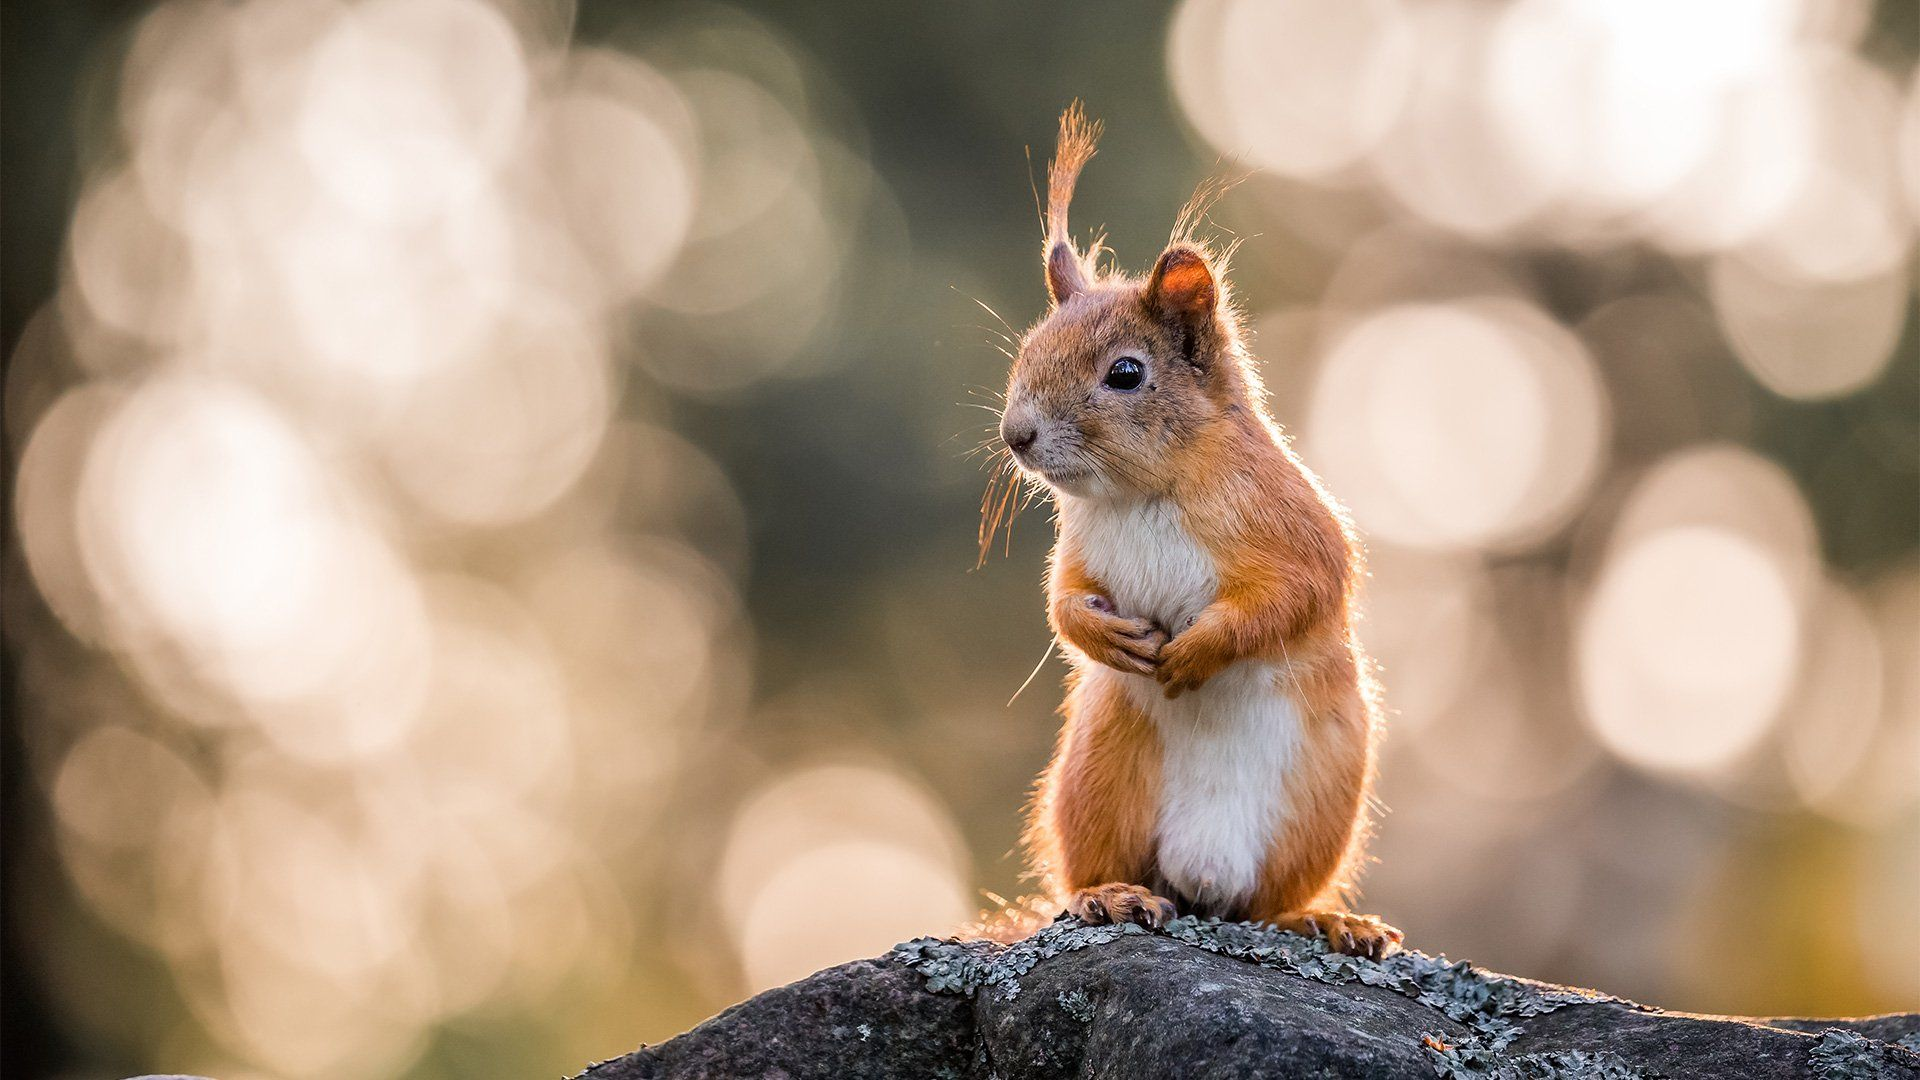 A squirrel stands on a tree branch, the dappled golden sunlight behind it creating a circular bokeh effect background.